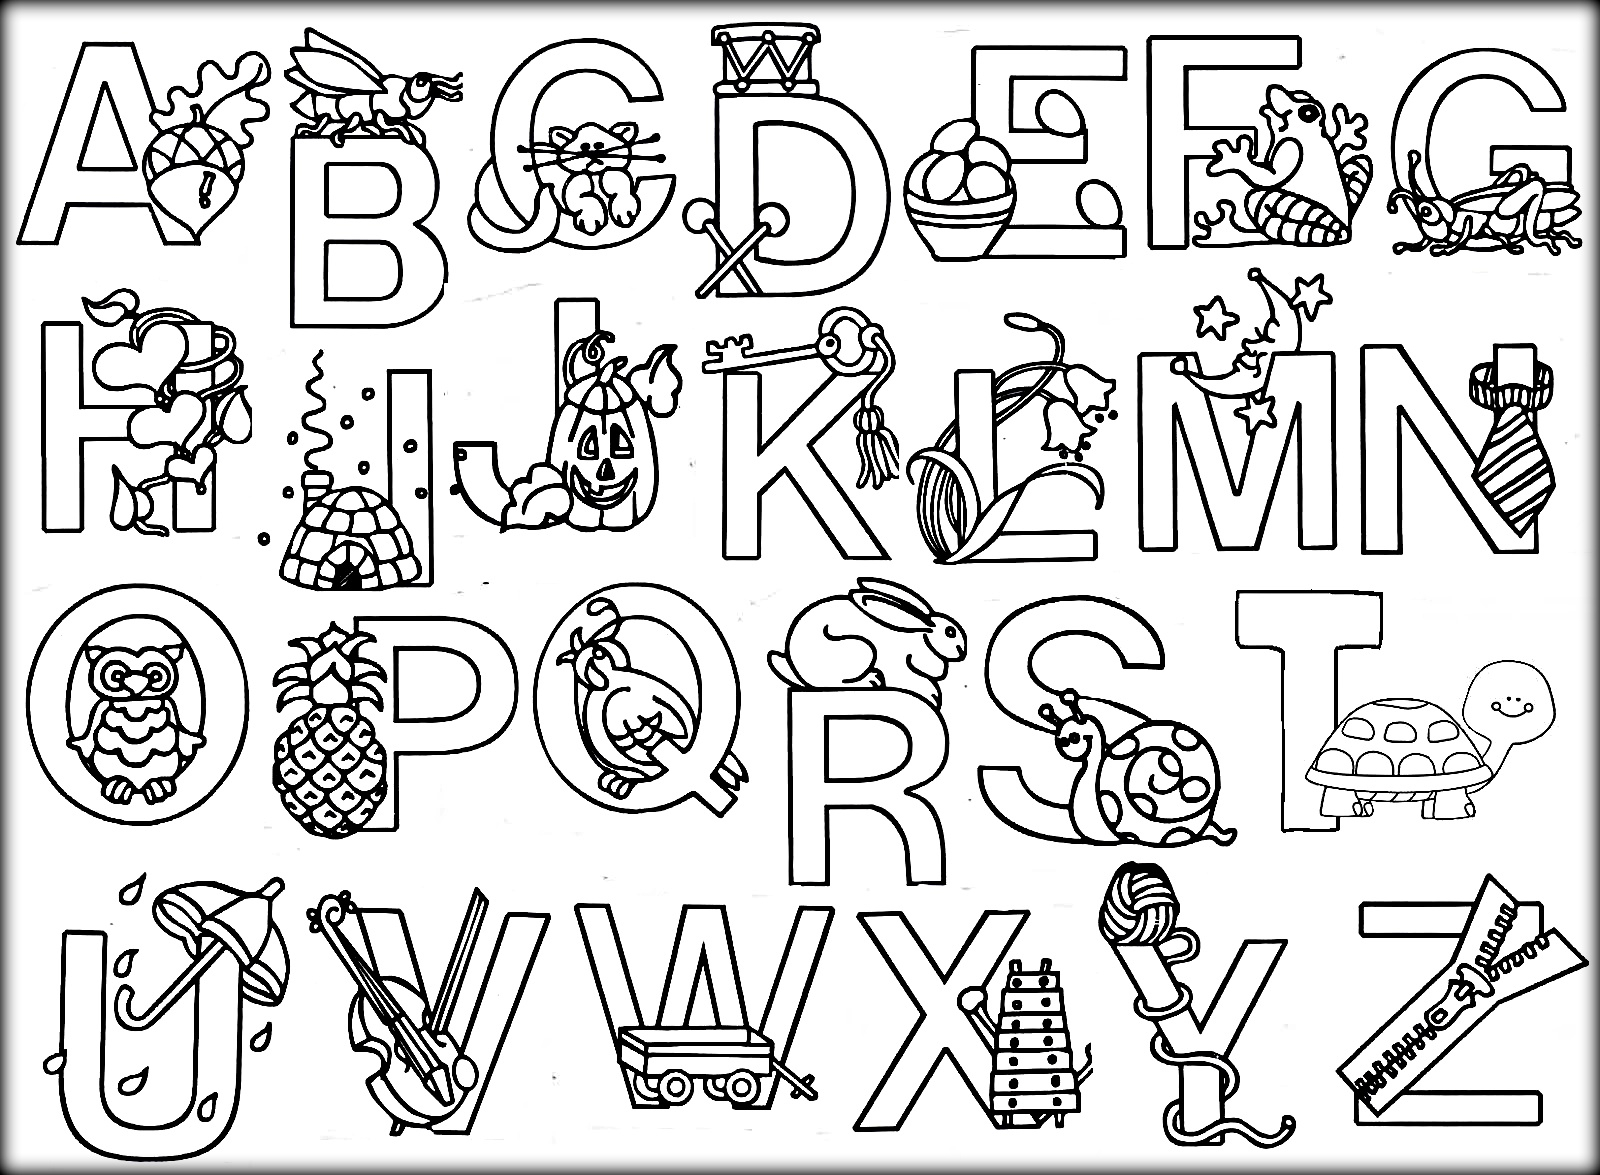 free alphabet coloring pages free printable alphabet coloring pages for kids best pages free coloring alphabet